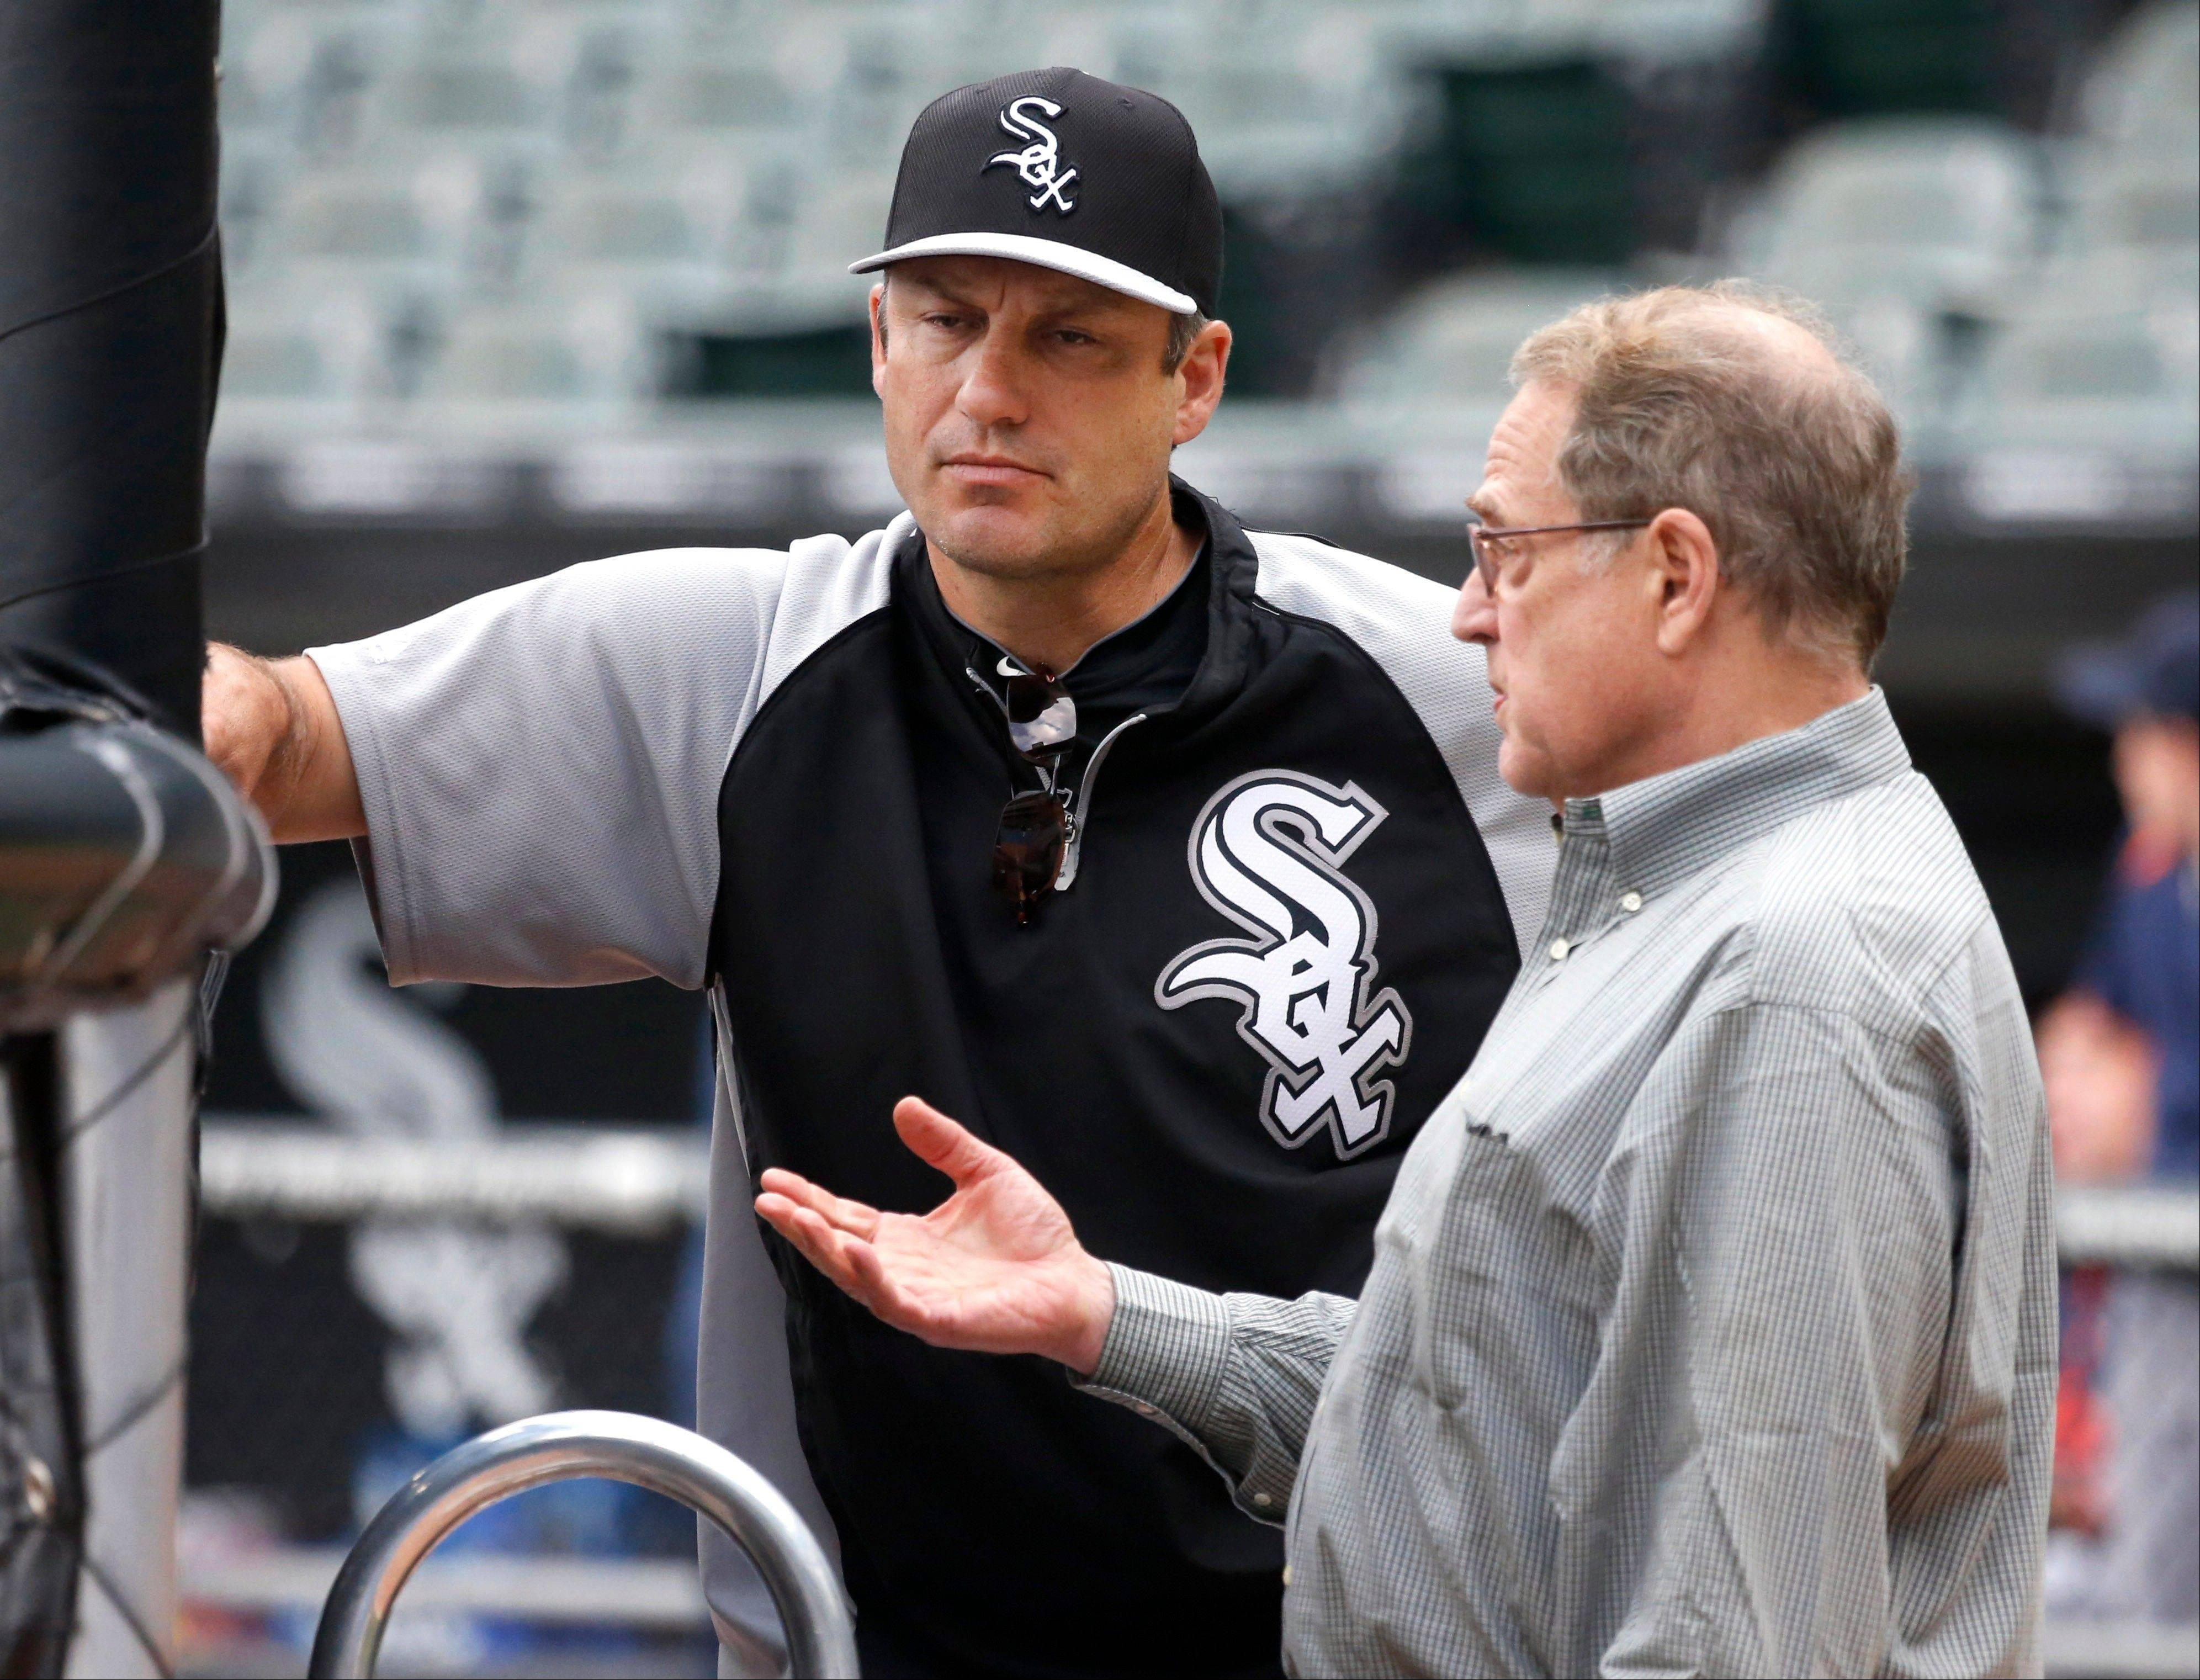 White Sox manager Robin Ventura, left, talks with team chairman Jerry Reinsdorf during batting practice earlier this season at U.S. Cellular Field.